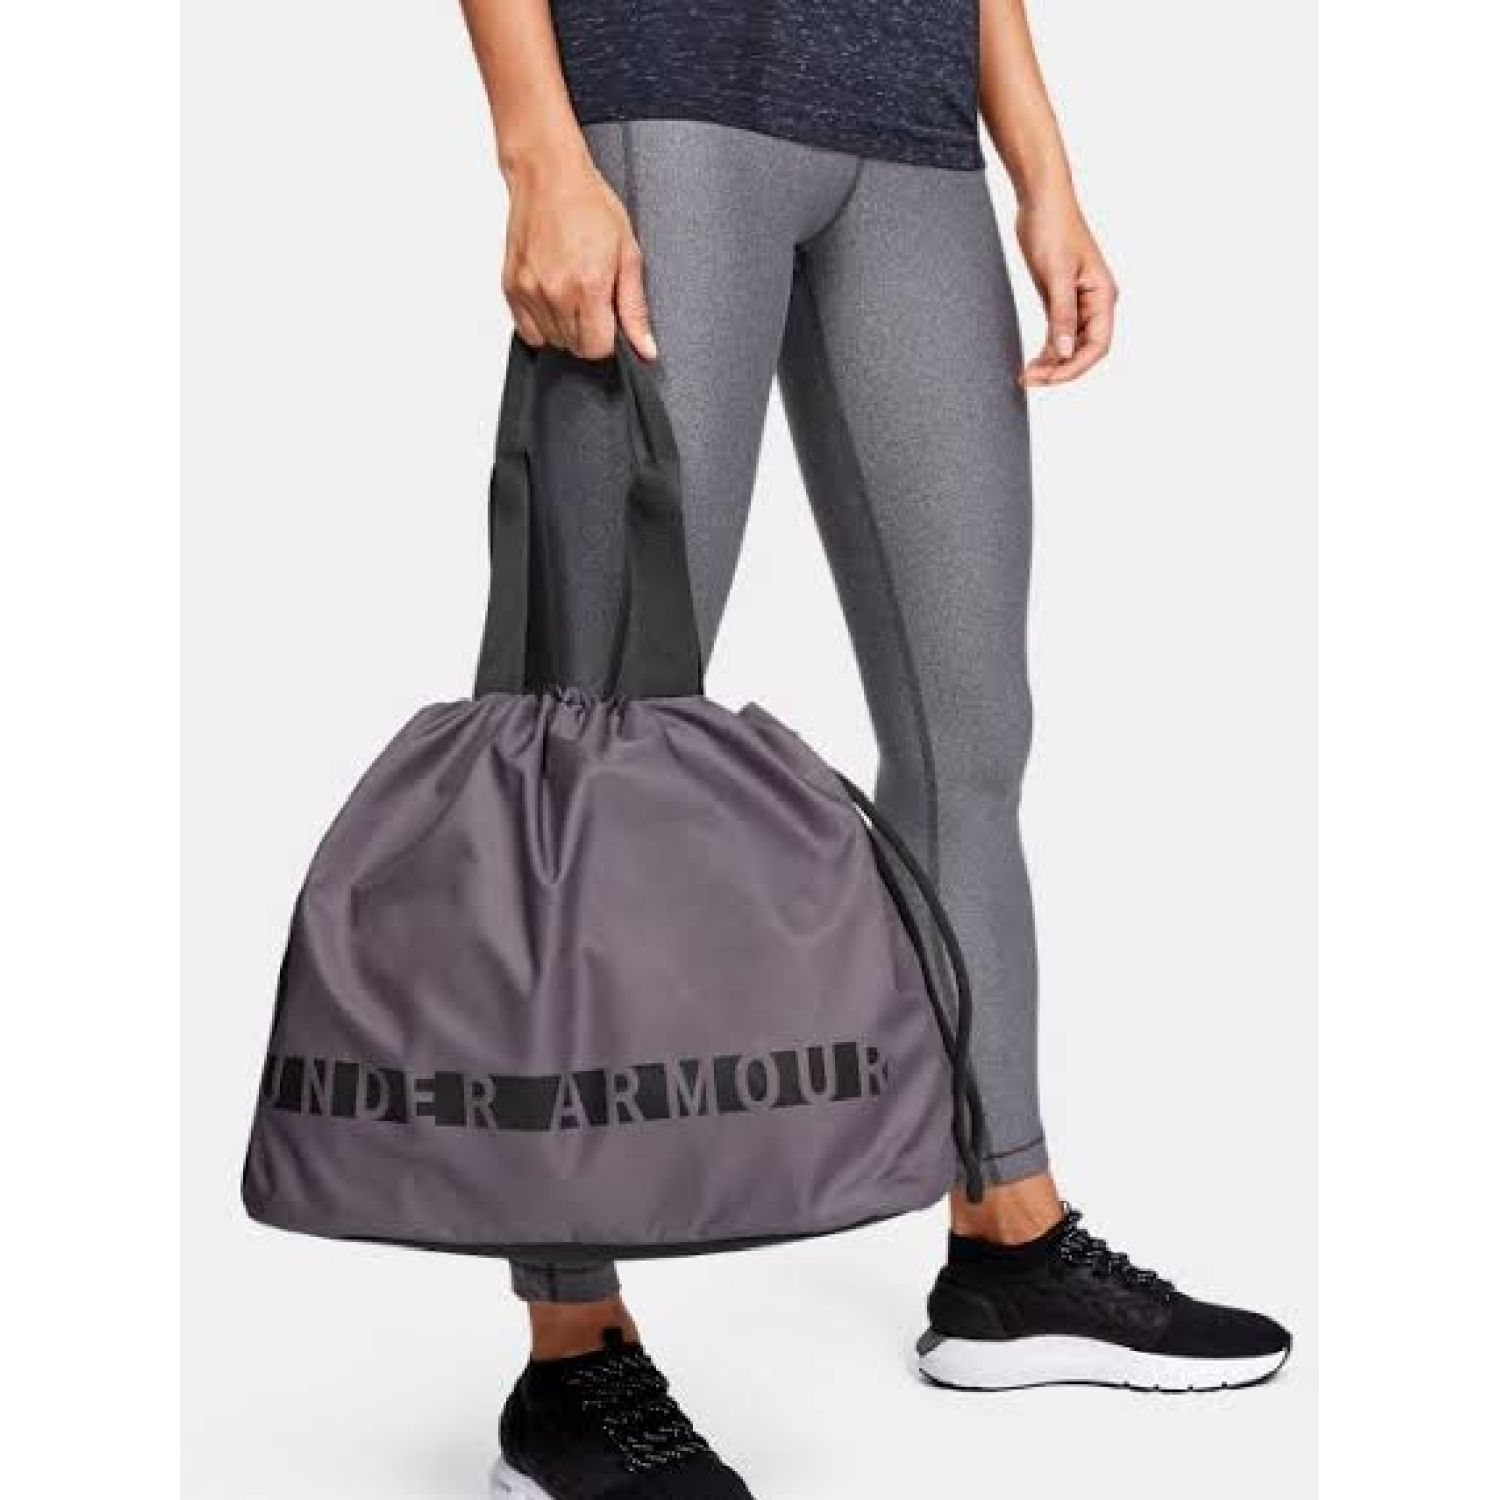 Under Armour UA Favorite Tote Plomo / negro bolsos de lazo